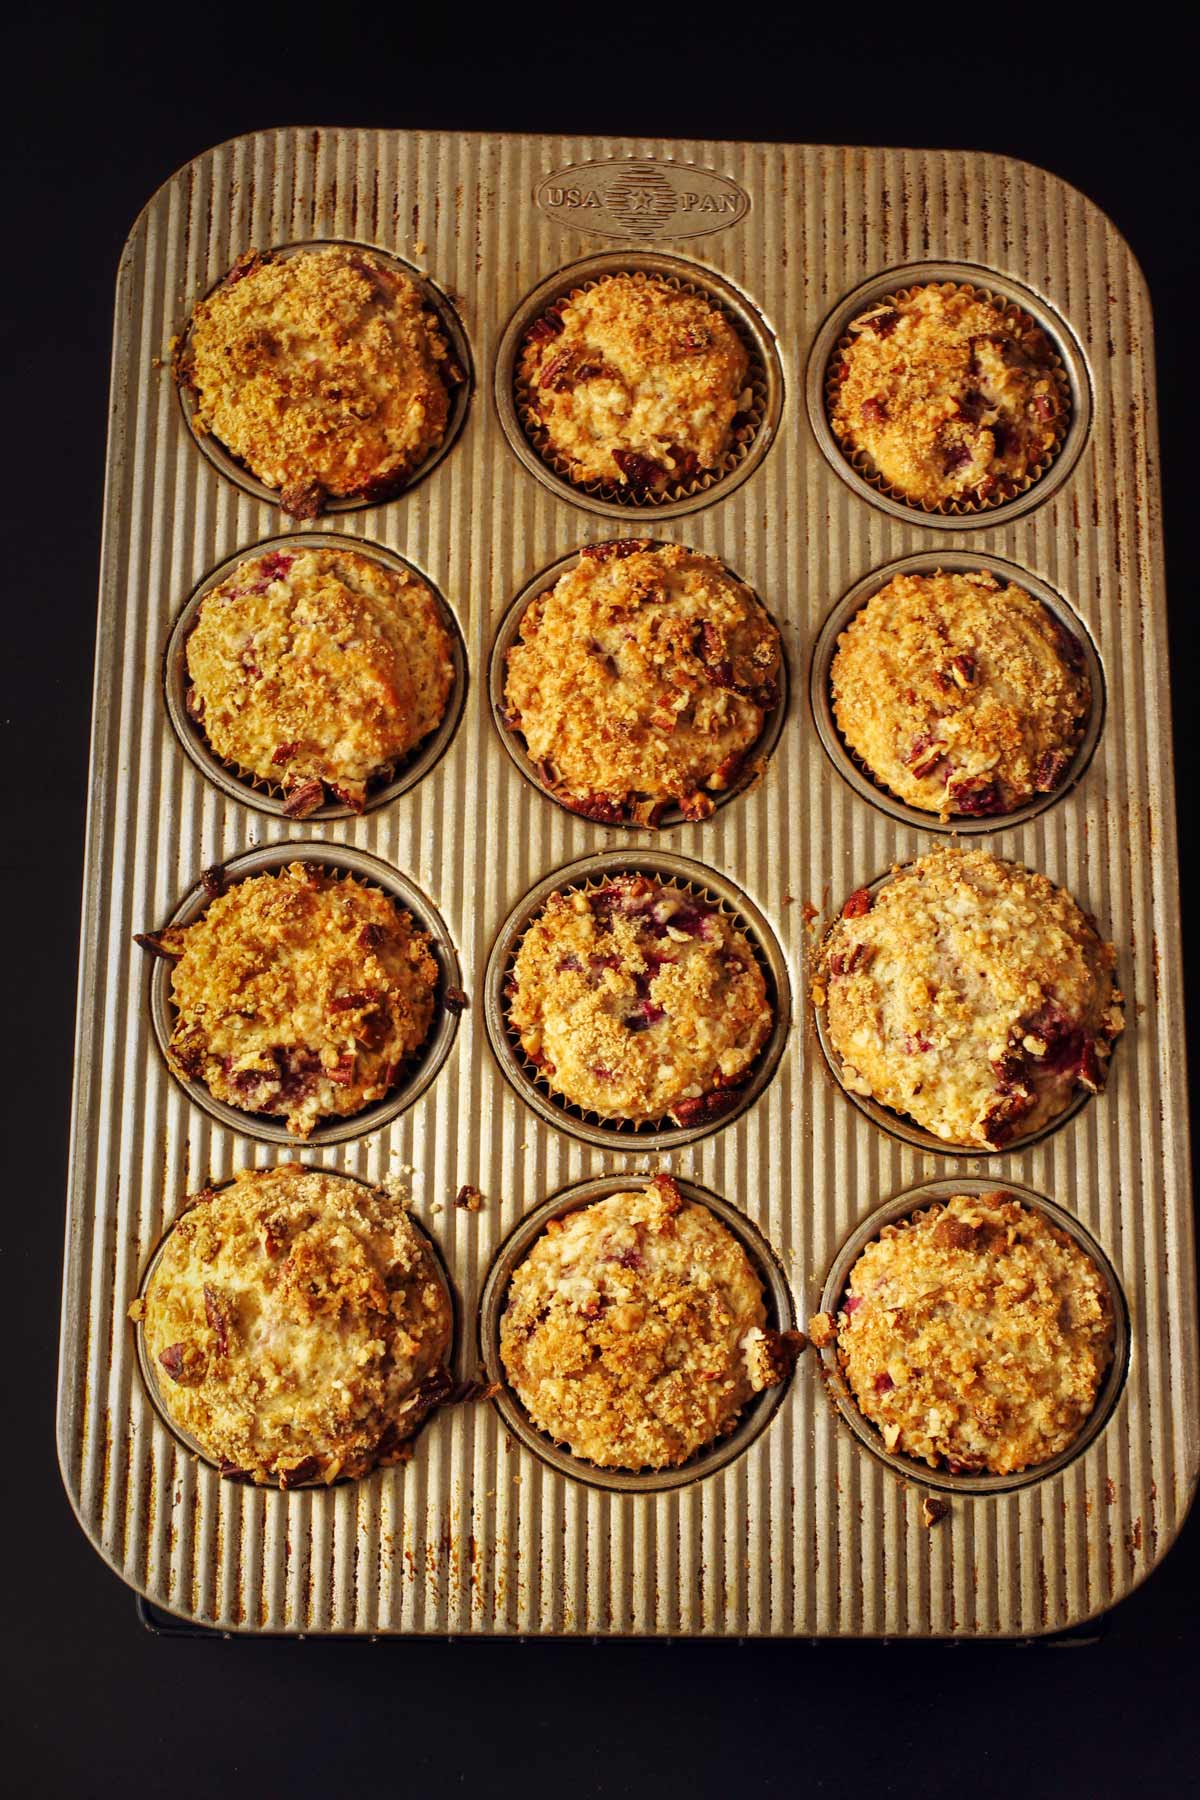 baked muffins in the pan.